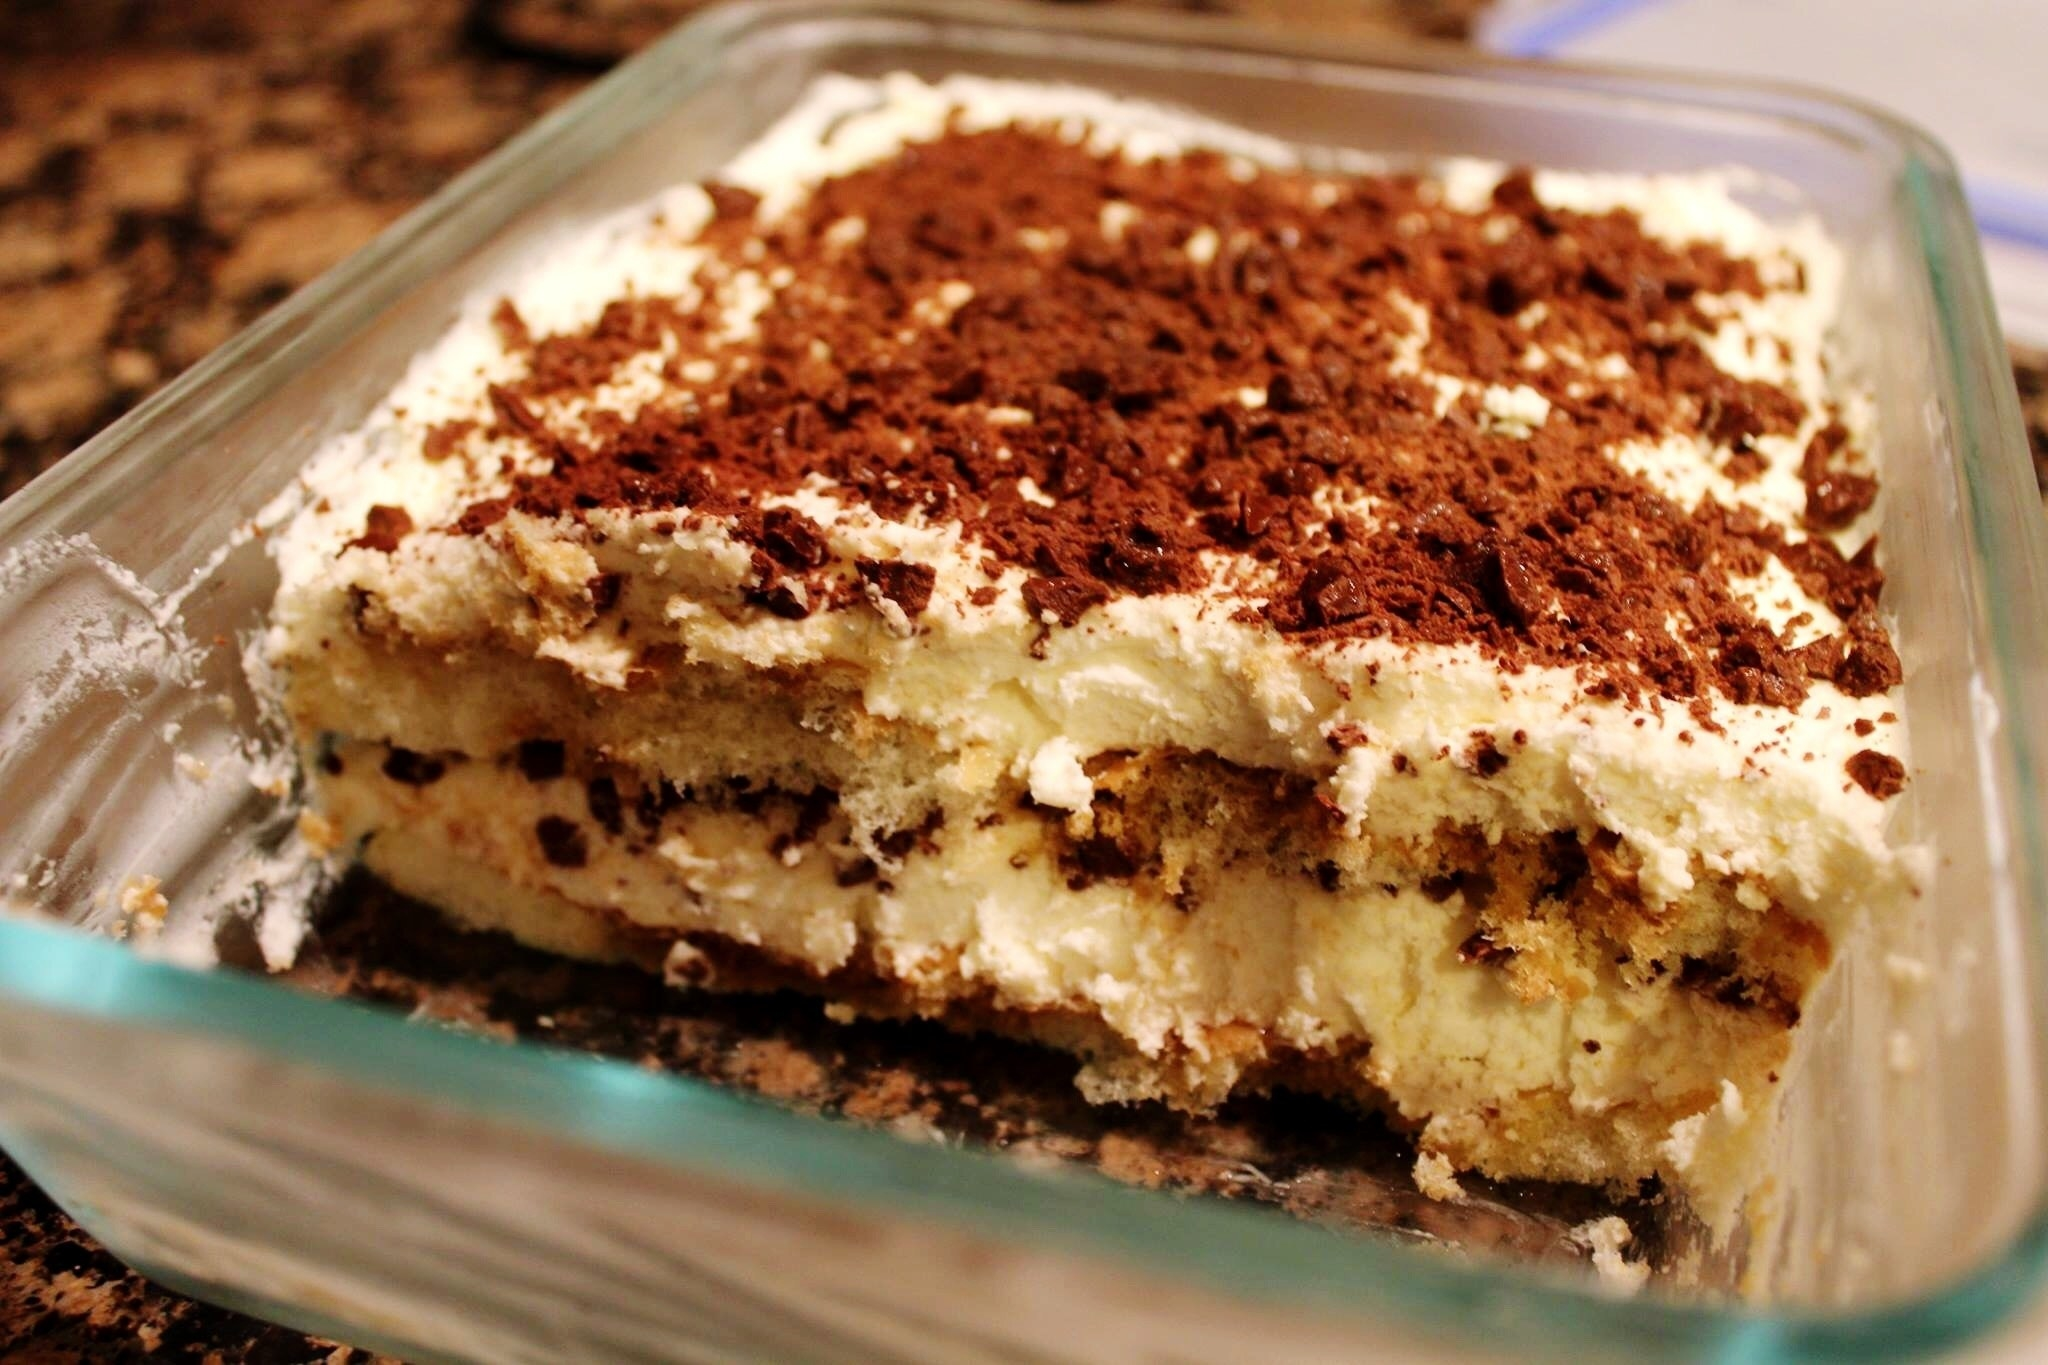 A glass container holds creamy, layered tiramisu with about 1/3 of the dessert gone